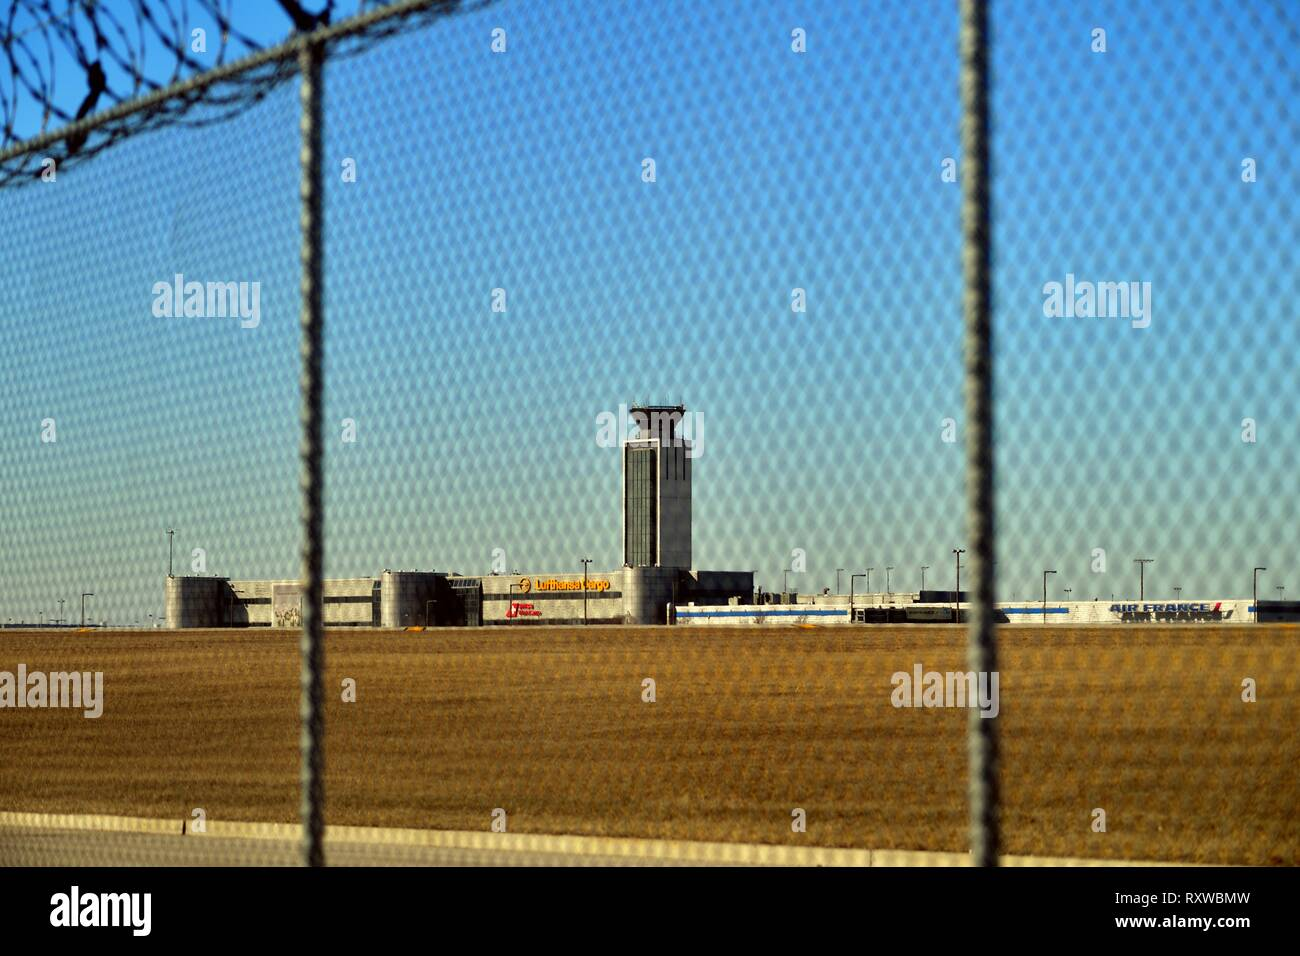 Chicago, Illinois, USA. A security fence topped with barbed wire surrounding O'Hare International Airport. - Stock Image